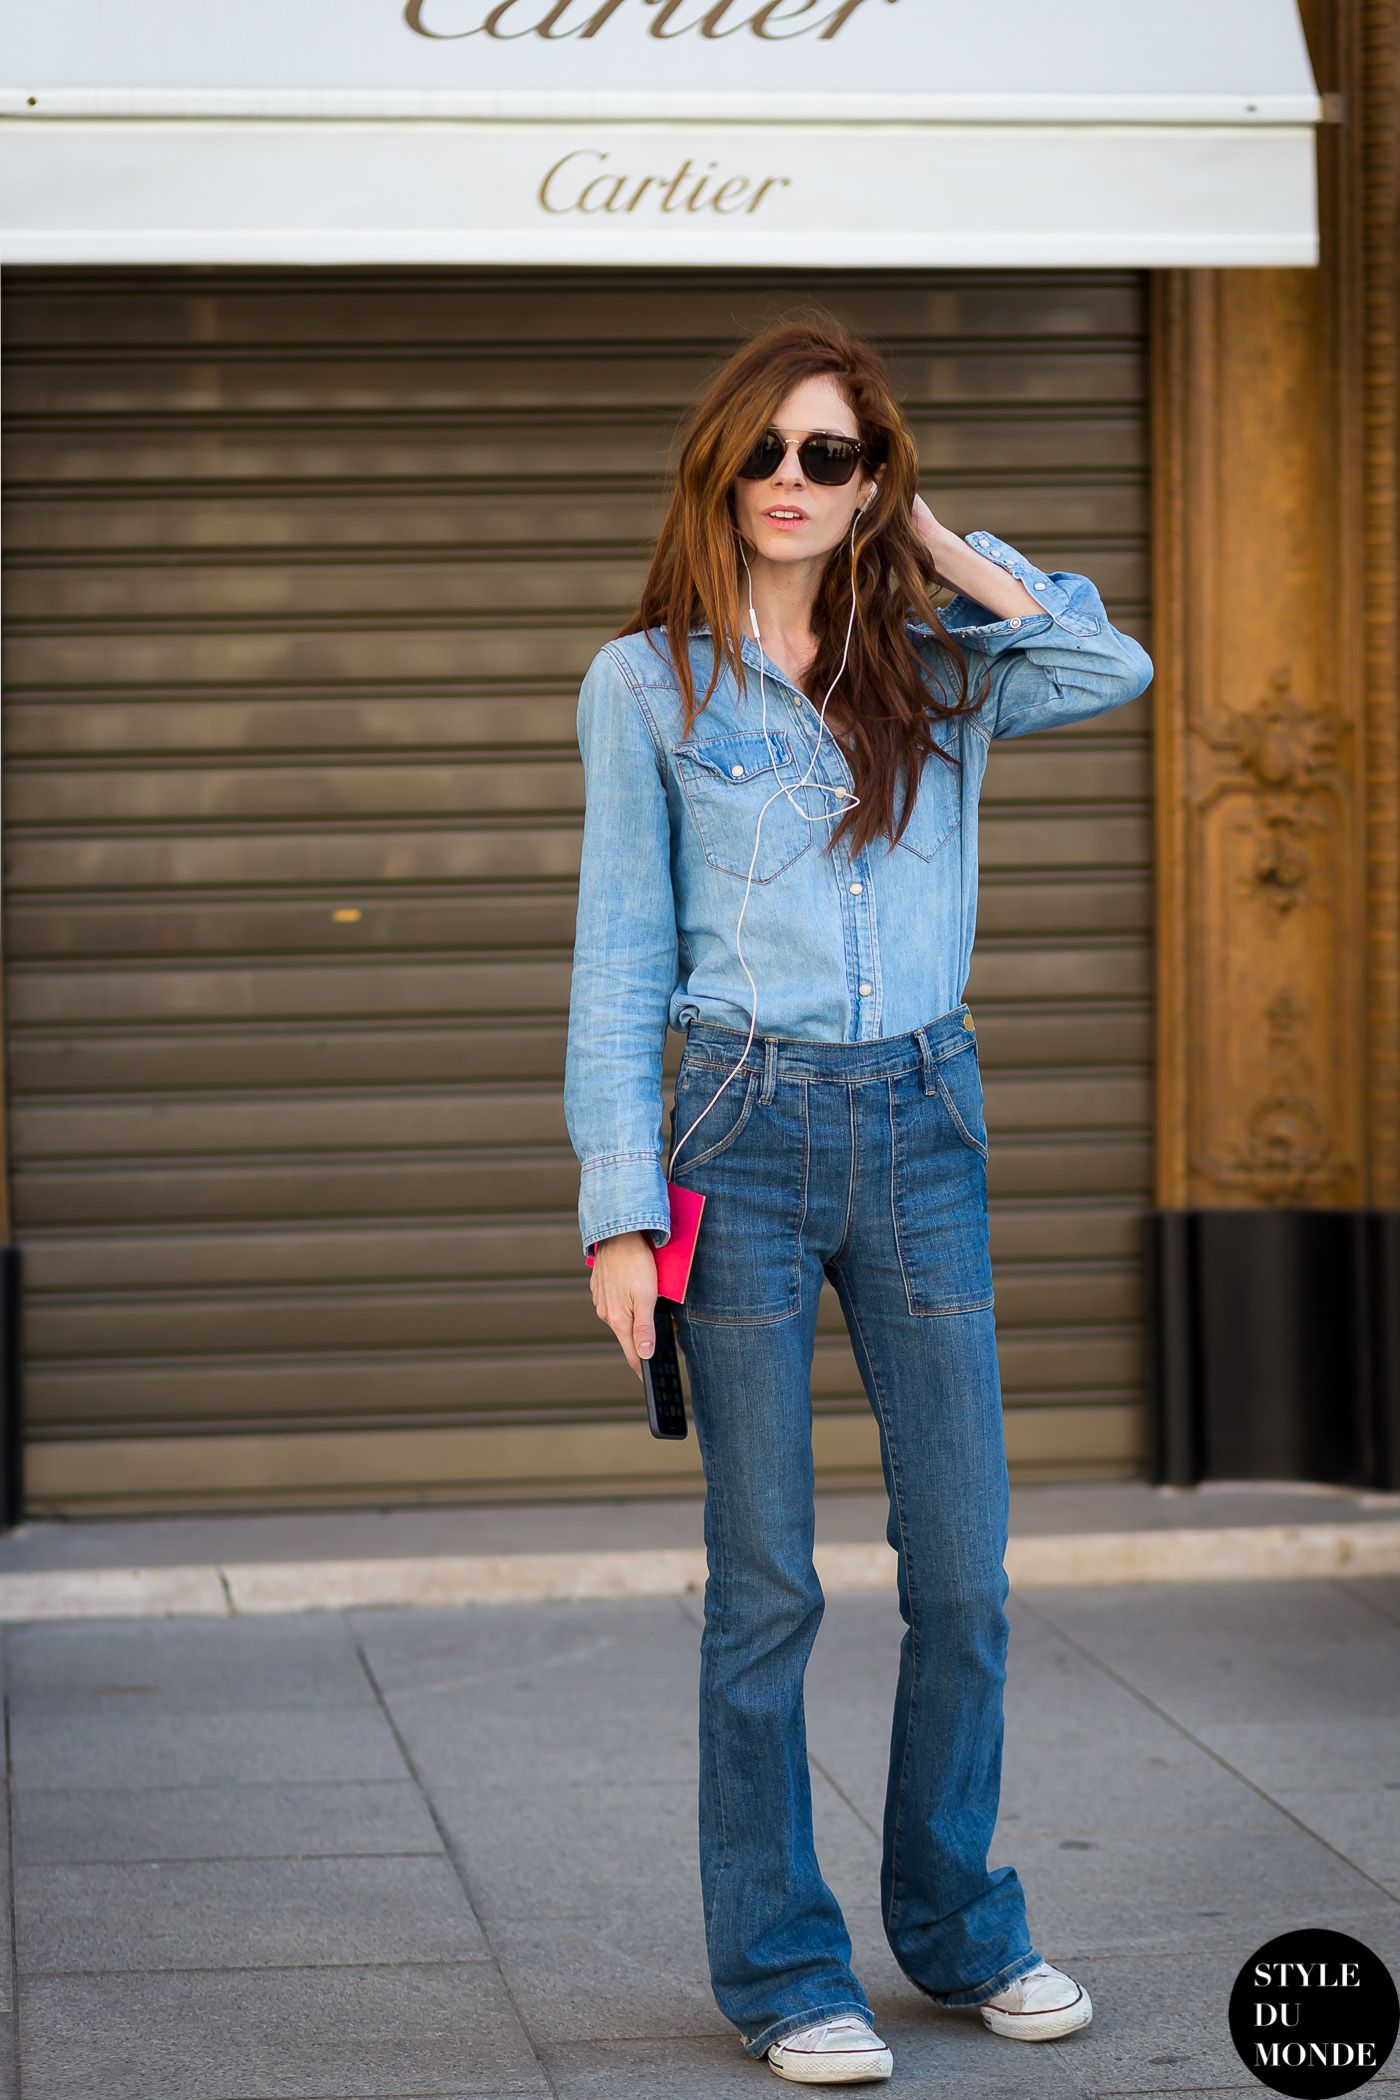 ‪#‎New‬ on ‪#‎STYLEDUMONDE‬ http://www.styledumonde.com with @stephanielacava ‪#‎StephanieLaCava‬ at ‪#‎paris‬ ‪#‎couture‬ ‪#‎fashionweek‬ ‪#‎pfw‬ ‪#‎jeanstories‬ ‪#‎denim‬ ‪#‎converse‬ ‪#‎outfit‬ ‪#‎ootd‬ ‪#‎streetstyle‬ ‪#‎streetfashion‬ ‪#‎streetchic‬ ‪#‎streetsnaps‬ ‪#‎fashion‬ ‪#‎mode‬ ‪#‎style‬